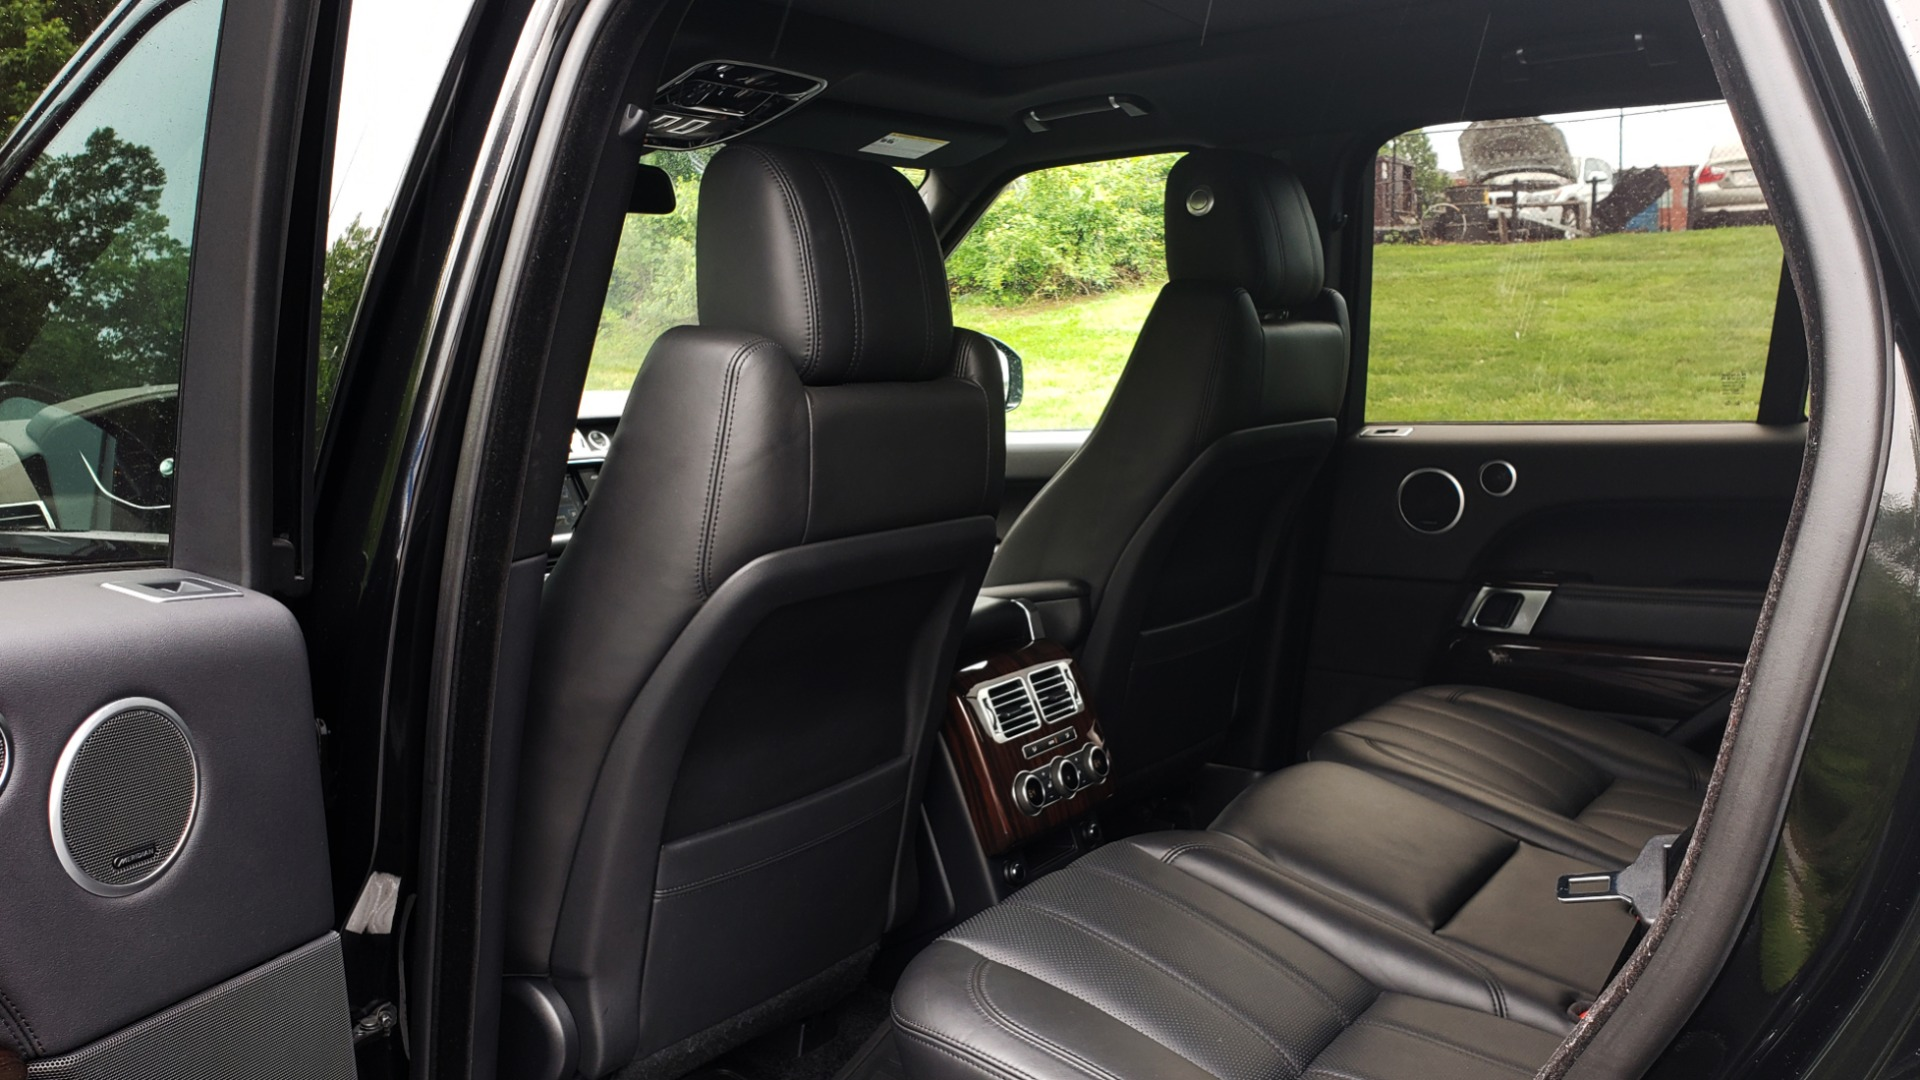 Used 2016 Land Rover Range Rover HSE 3.0L SC V6 / NAV / PANO-ROOF / VENT SEATS / REARVIEW / BLIND SPOT for sale Sold at Formula Imports in Charlotte NC 28227 63